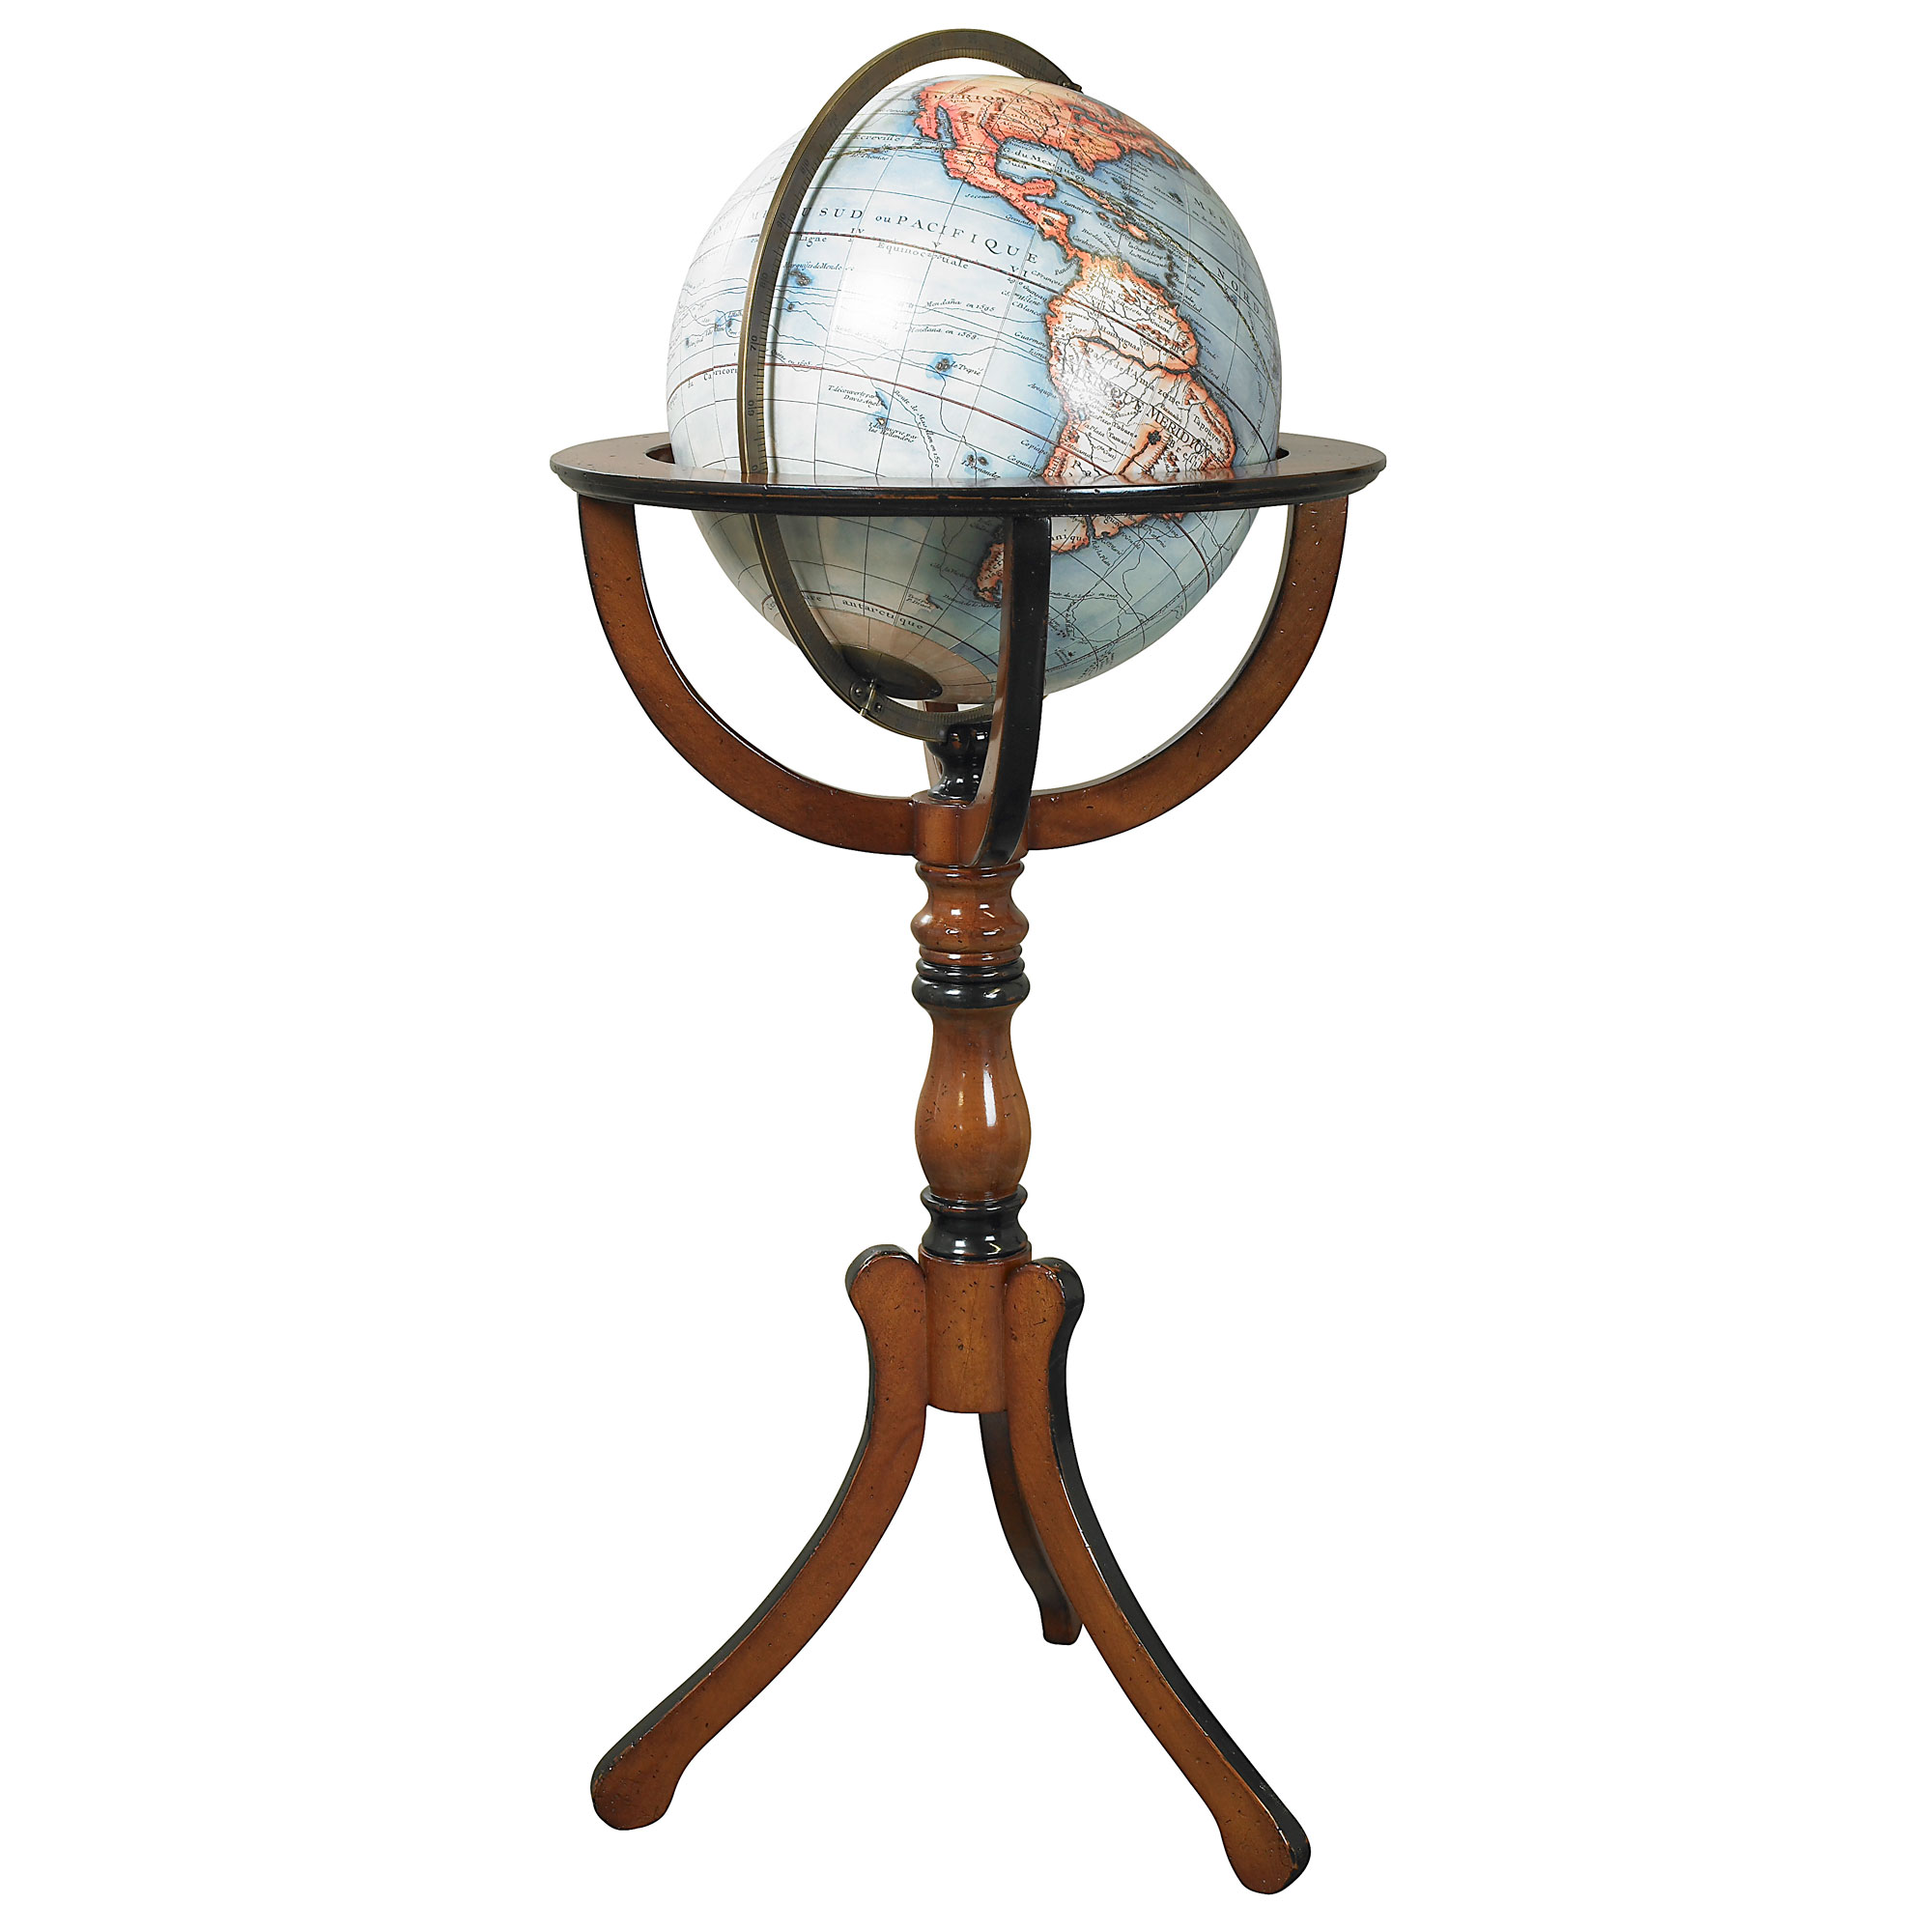 antique library globe reproduction or old globe or historical globe. Black Bedroom Furniture Sets. Home Design Ideas